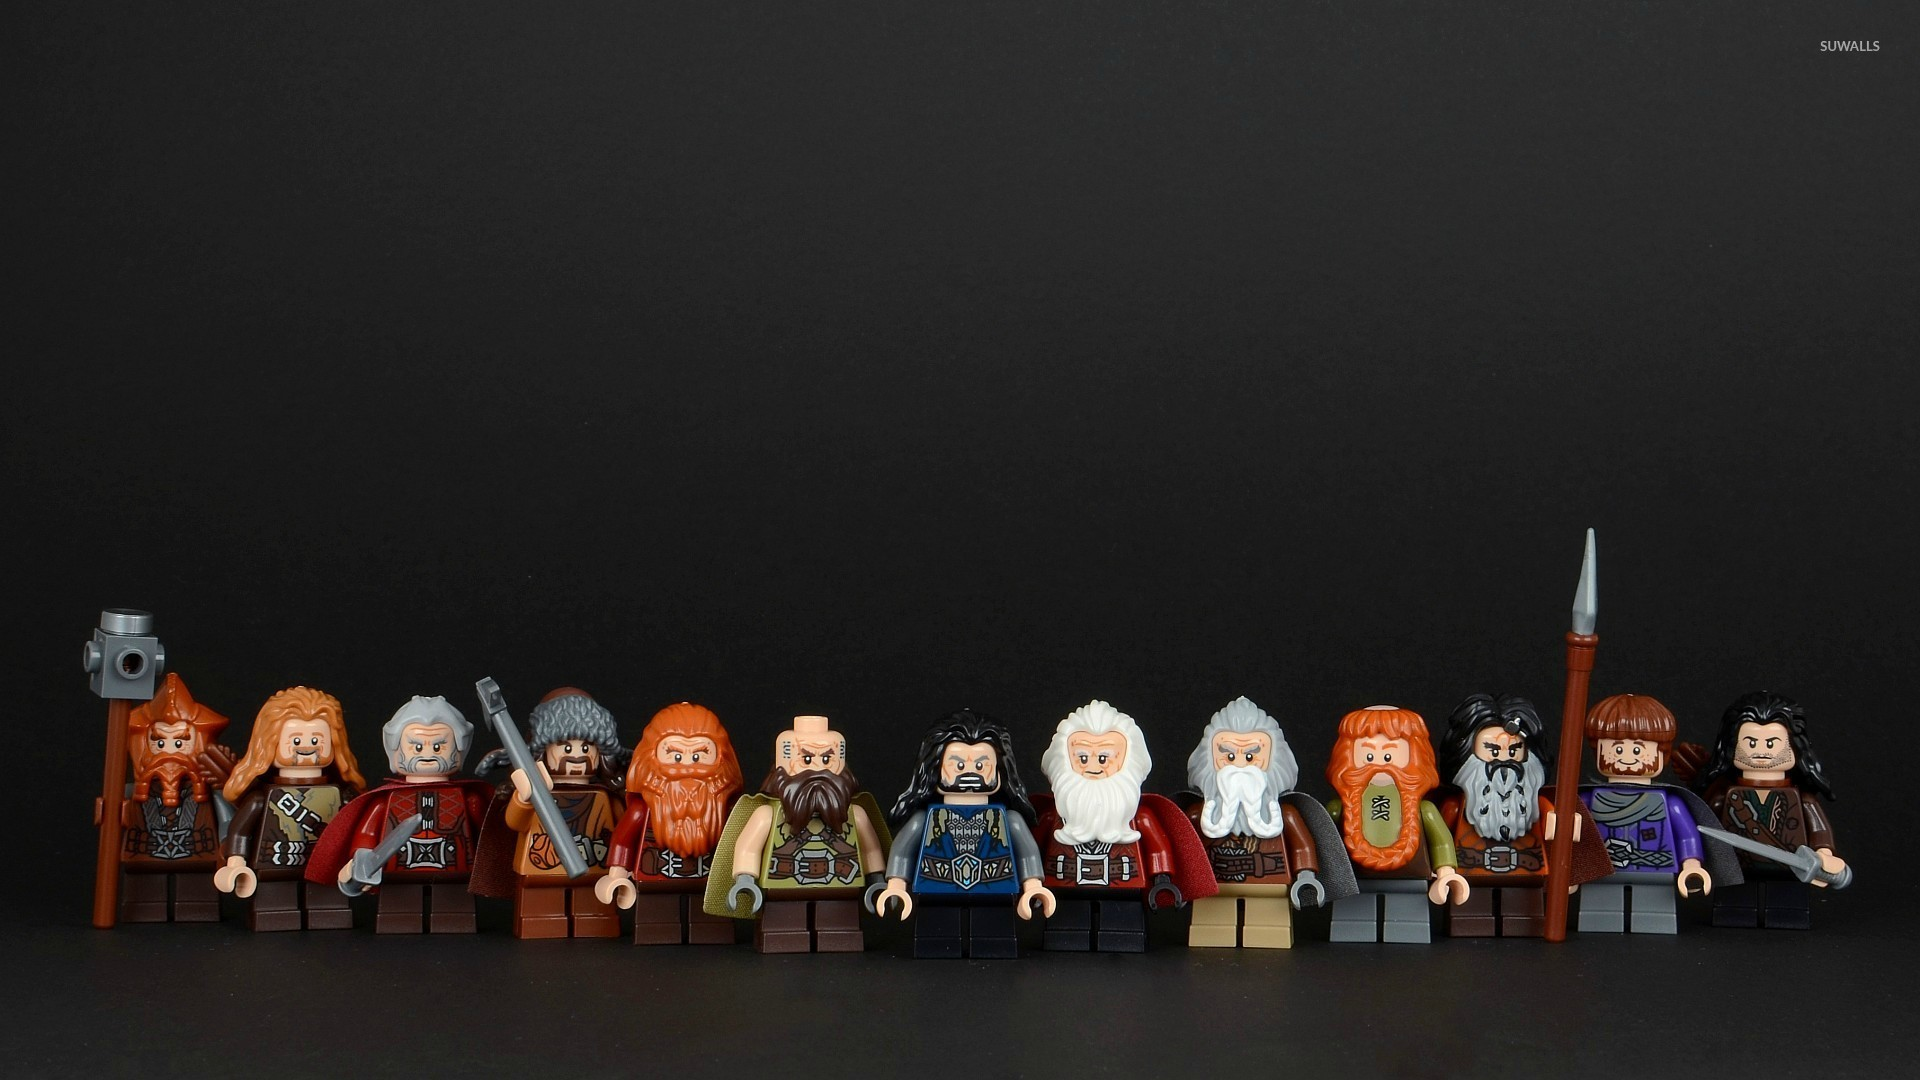 Lego The Hobbit Wallpaper Photography Wallpapers 41709